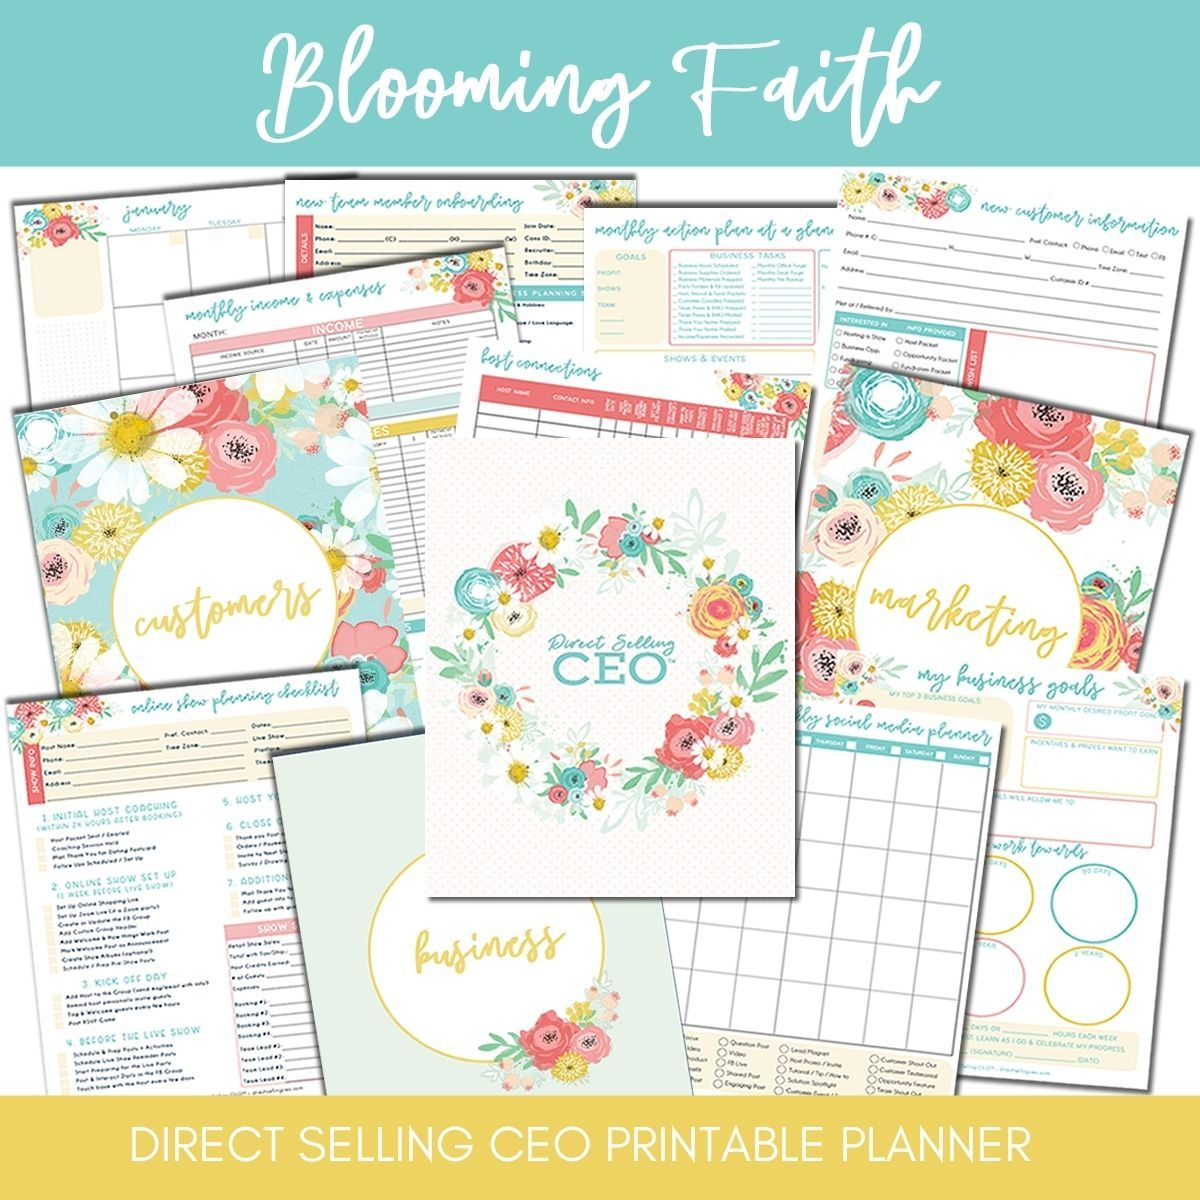 Blooming Faith Printable Direct Sales Planner by DSCEO